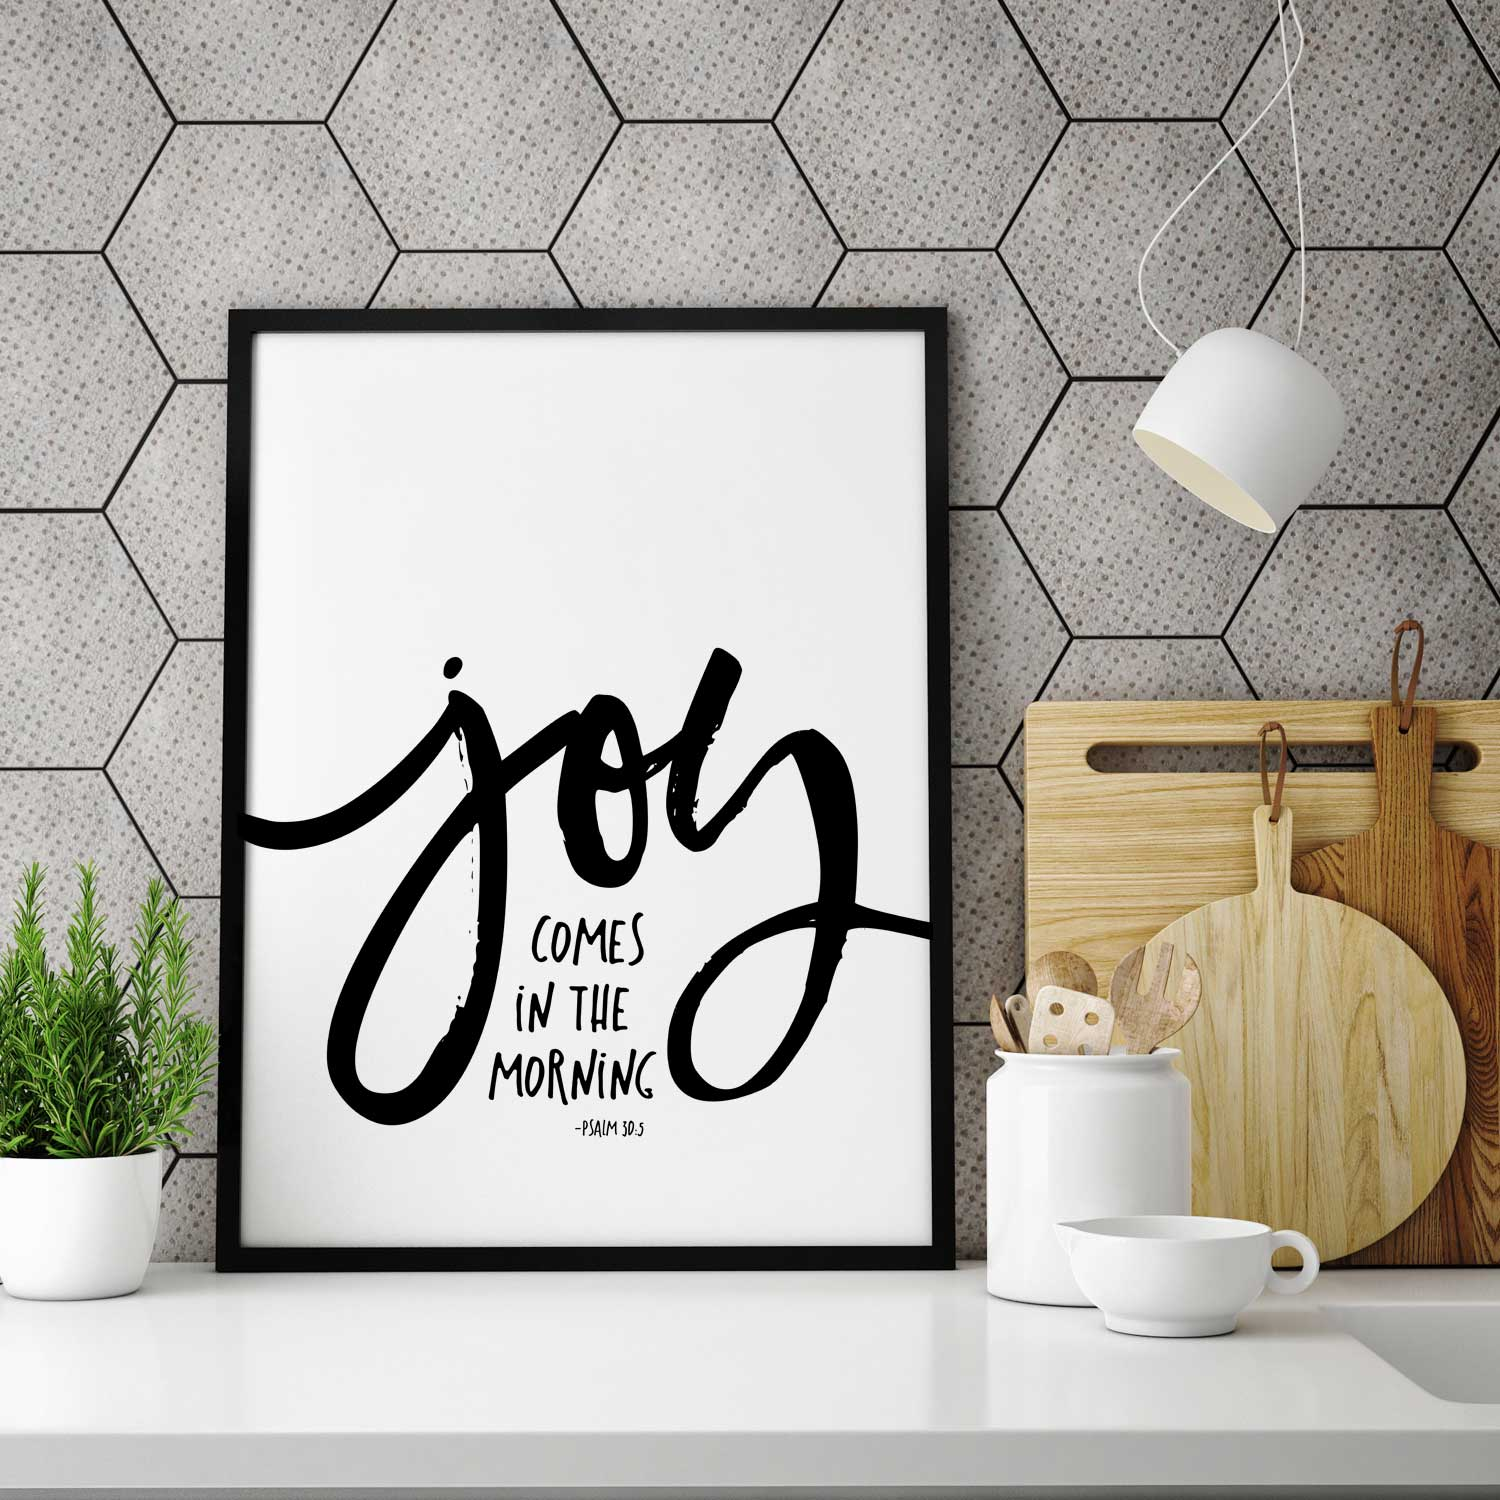 Joy comes in the morning - Wall Decor